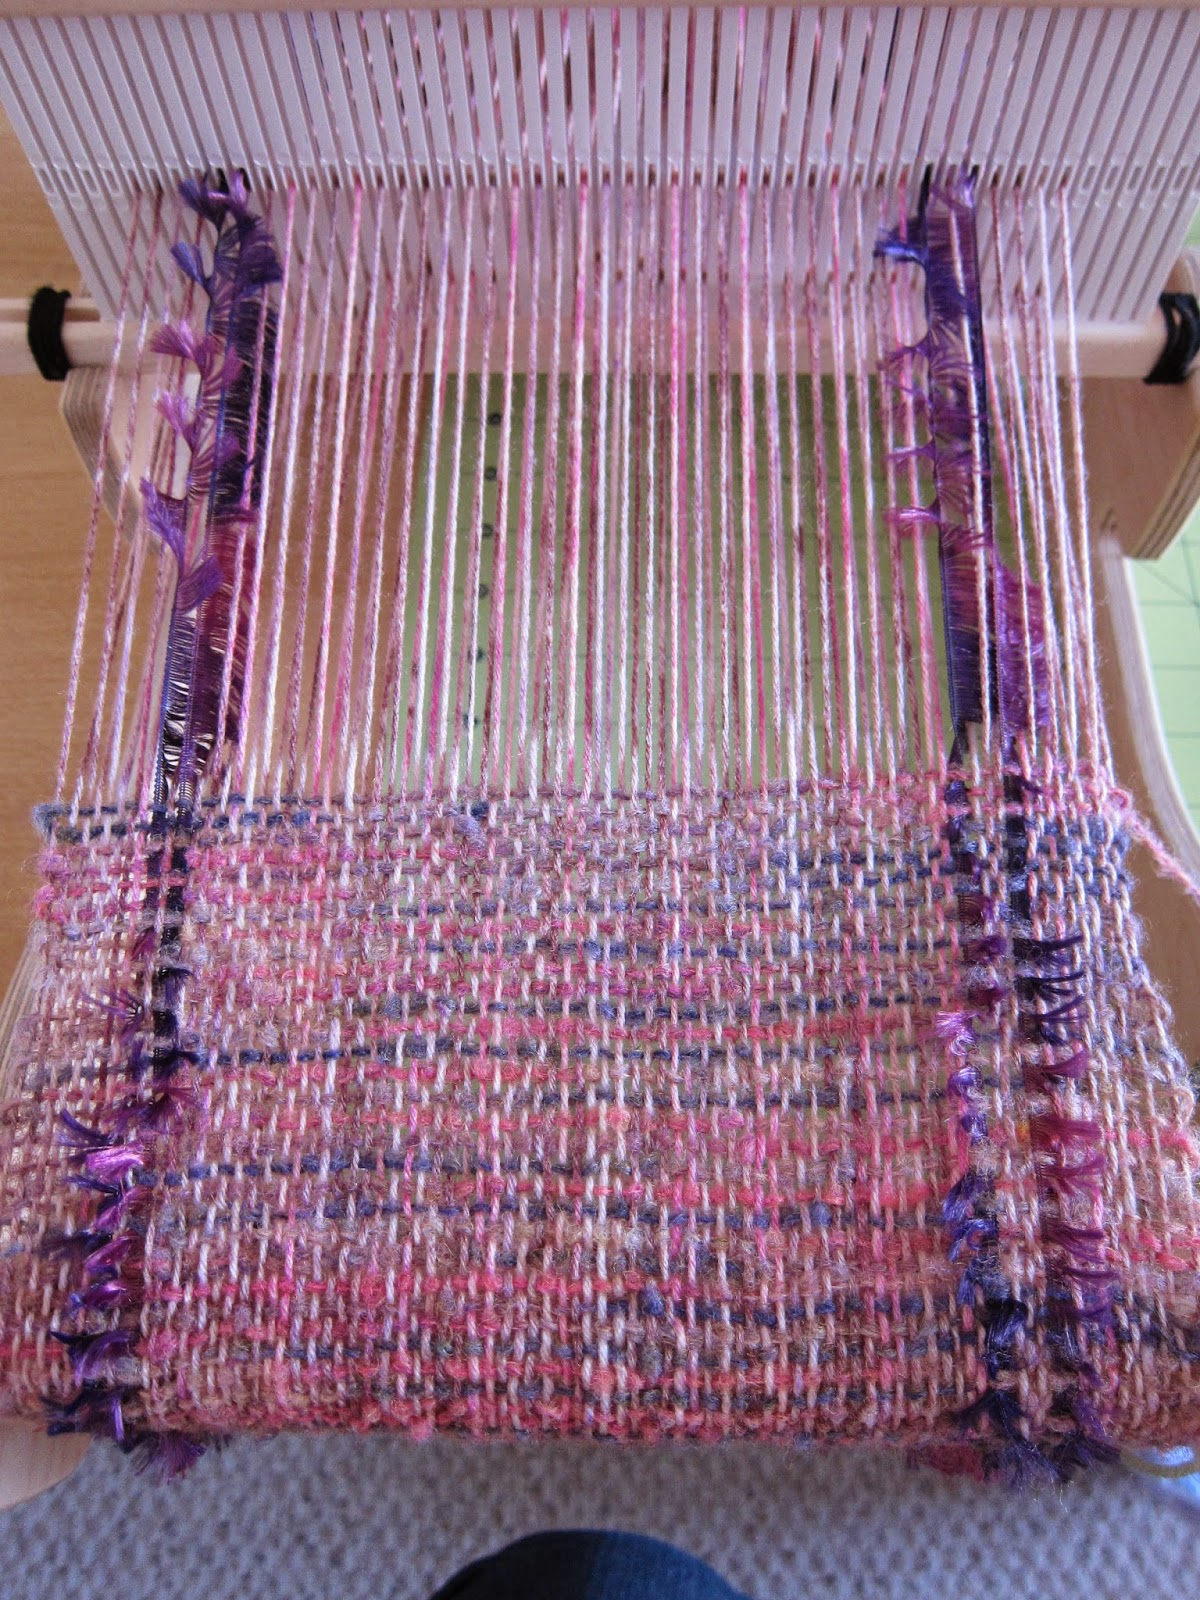 Thinking Out Loud: A Quandary and Some Weaving